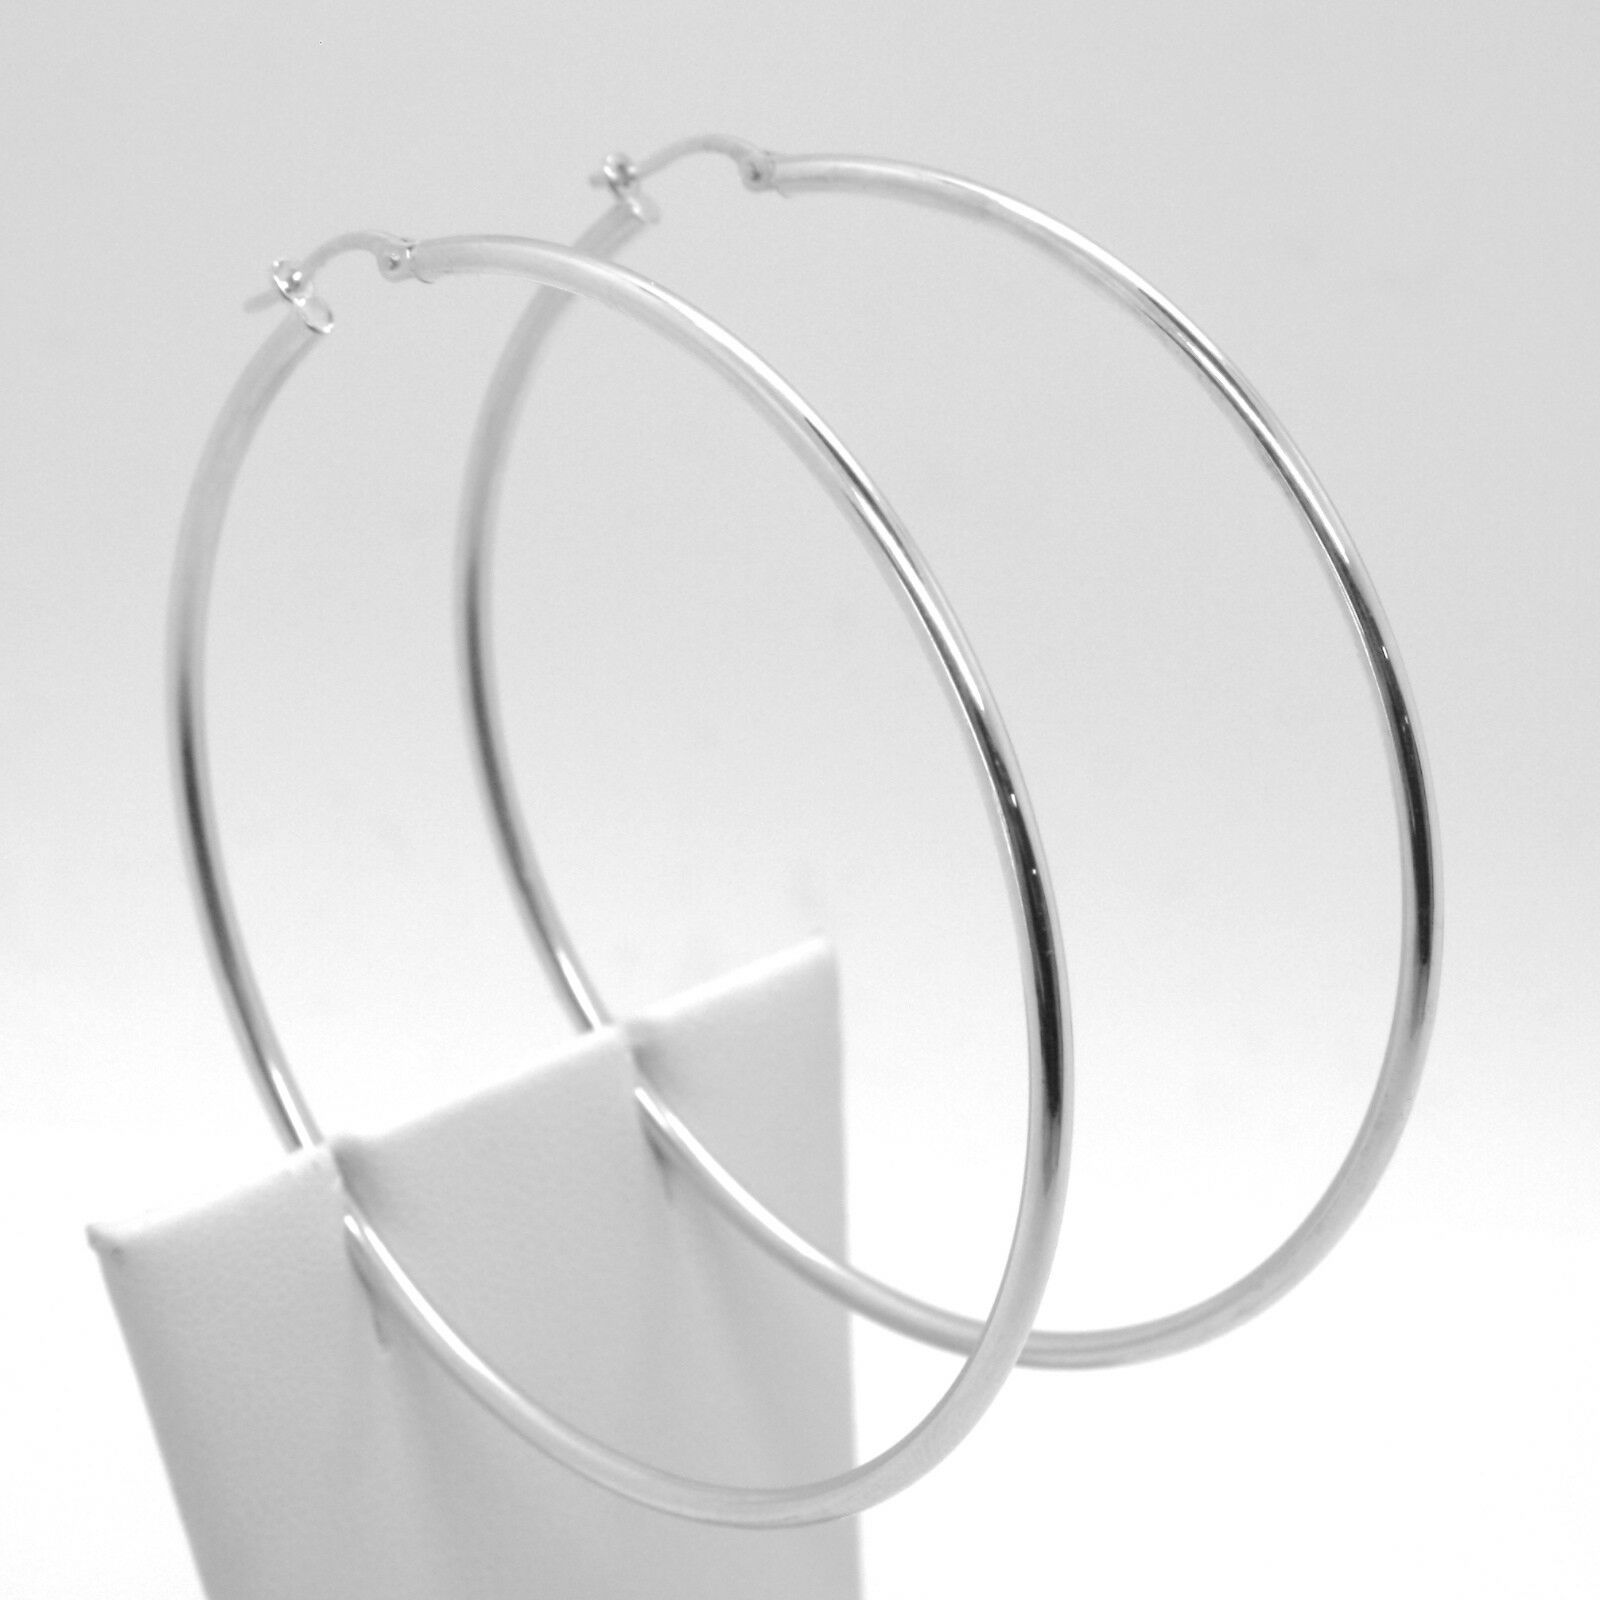 18K WHITE GOLD ROUND CIRCLE EARRINGS DIAMETER 60 MM, WIDTH 2 MM, MADE IN ITALY